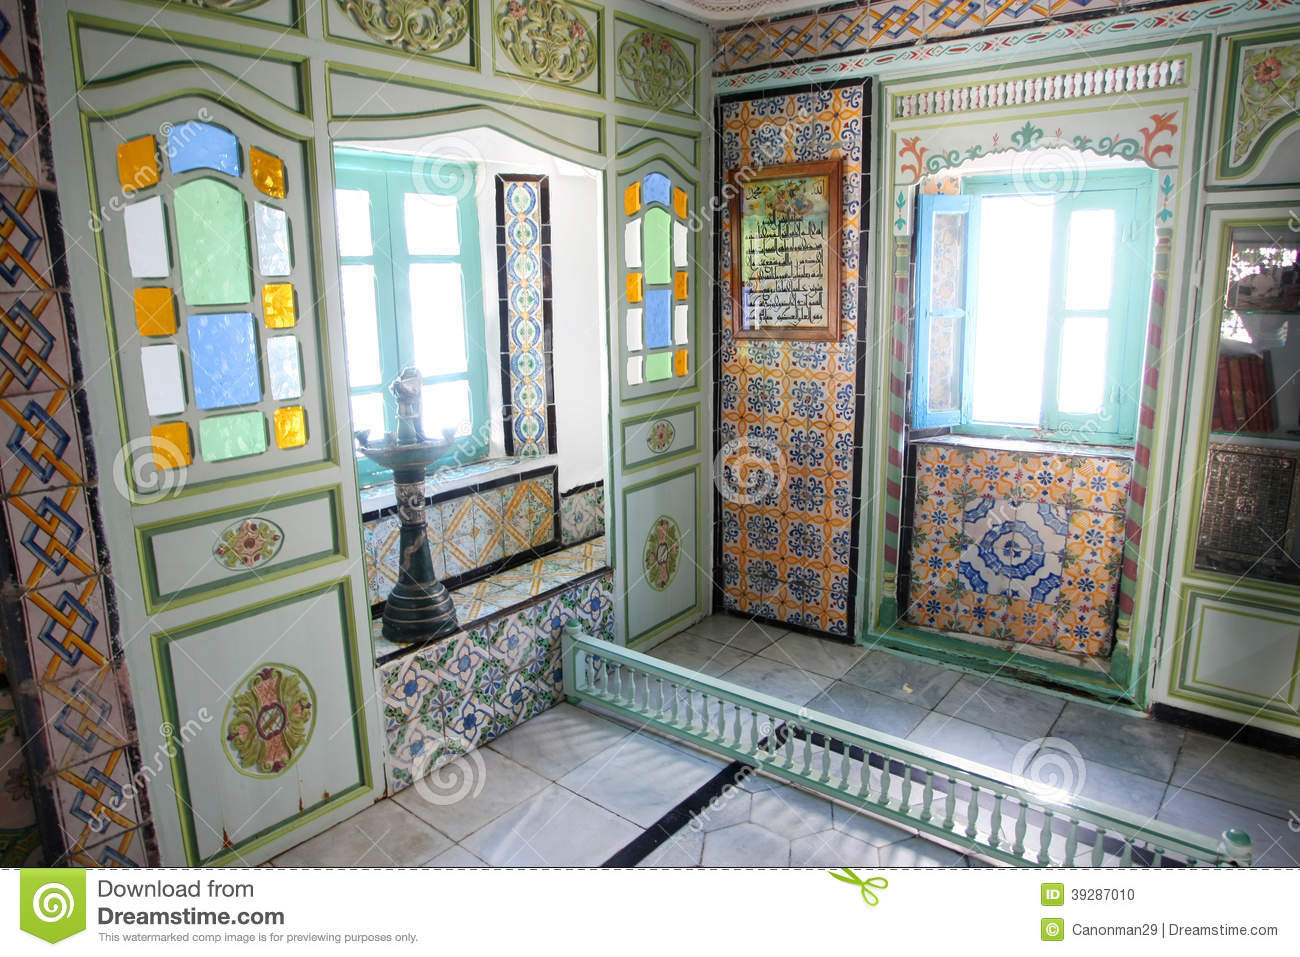 Sidi bou said house interior stock photo image 39287010 for Acheter une maison en tunisie